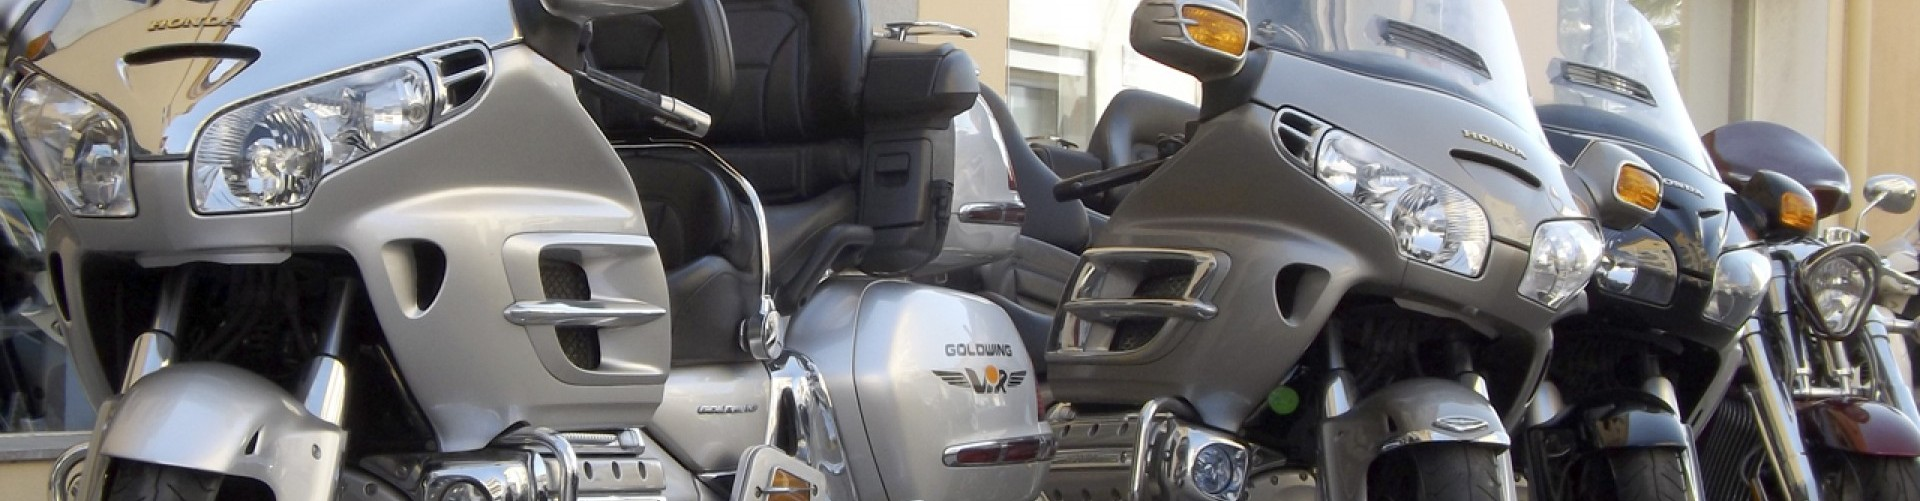 cropped-cropped-alquiler-goldwing-068-copia21.jpg